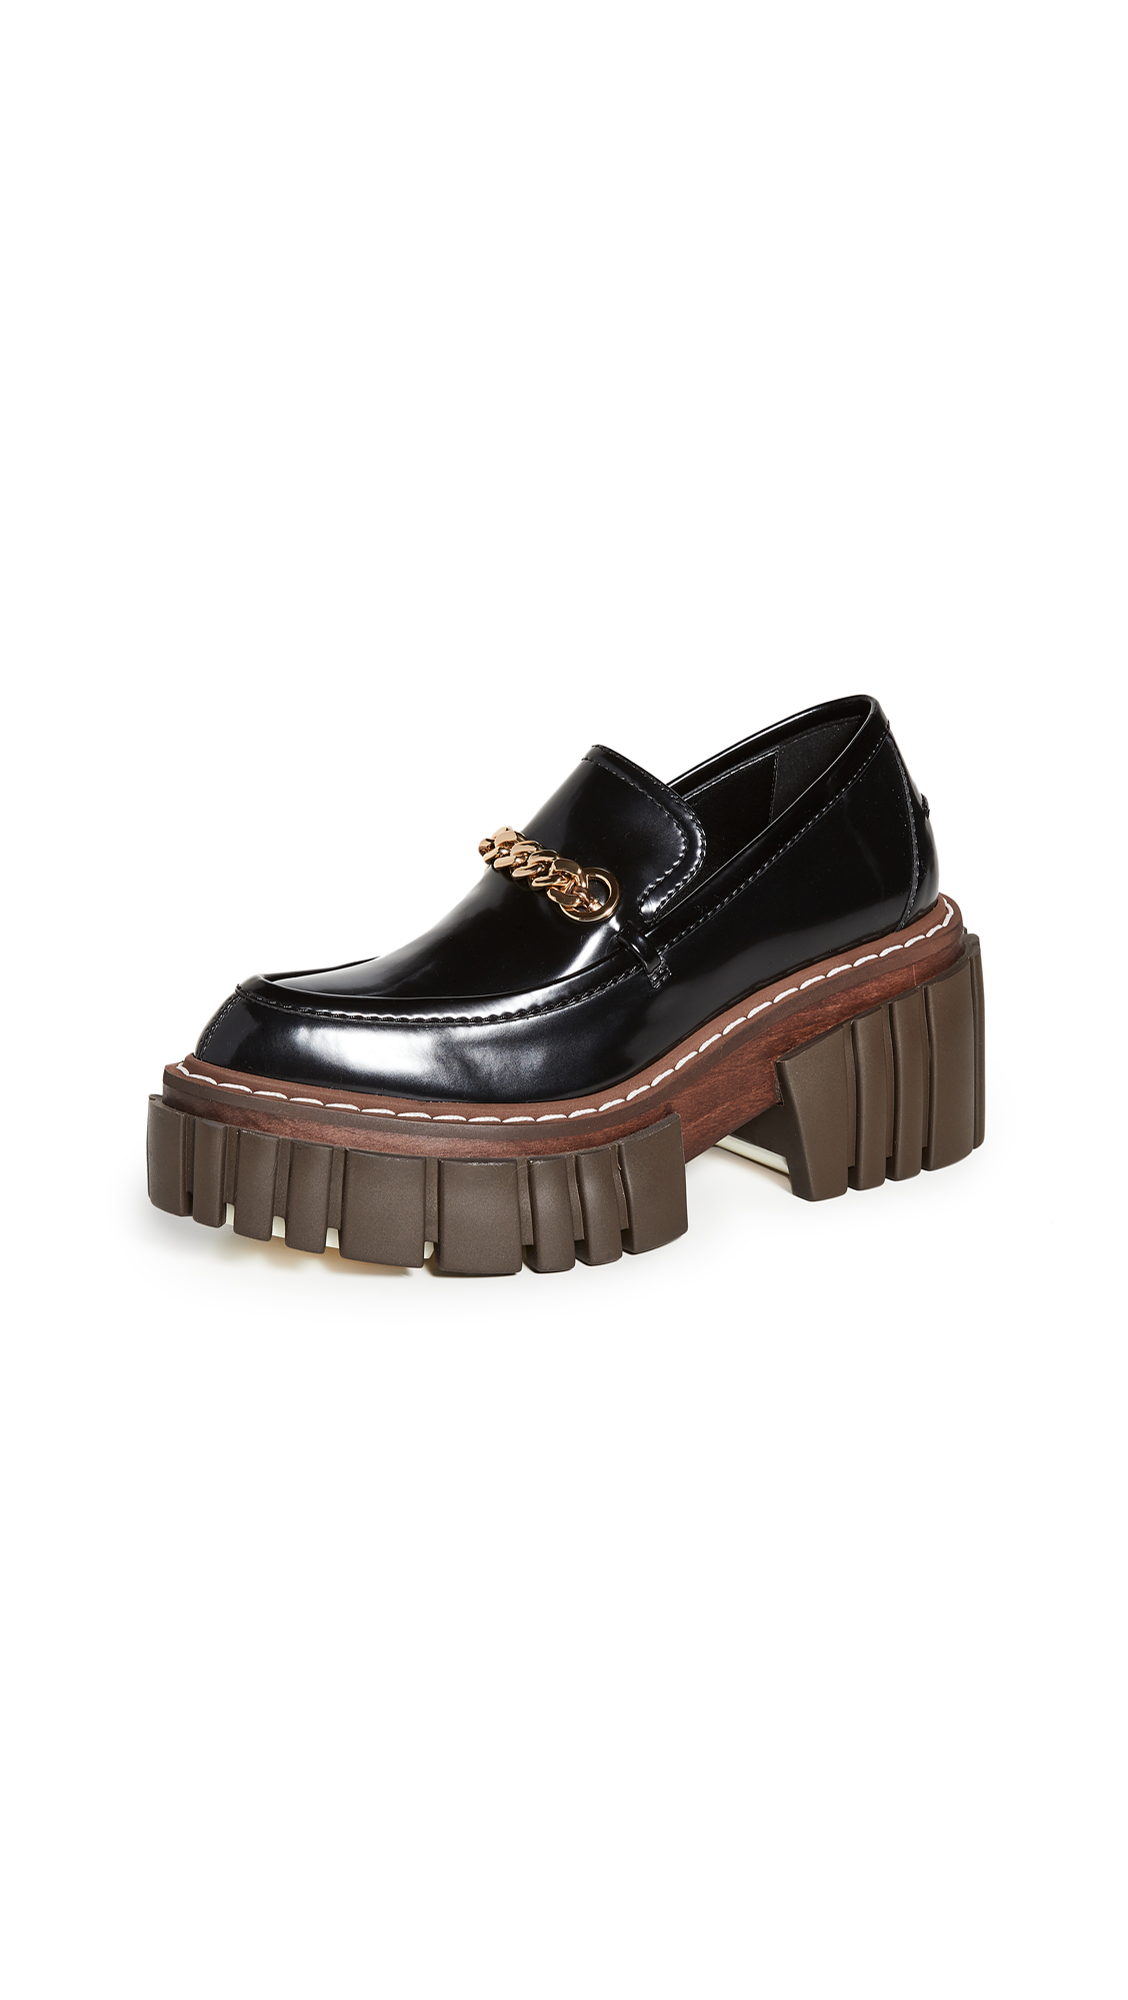 STELLA MCCARTNEY EMILIE LOAFERS